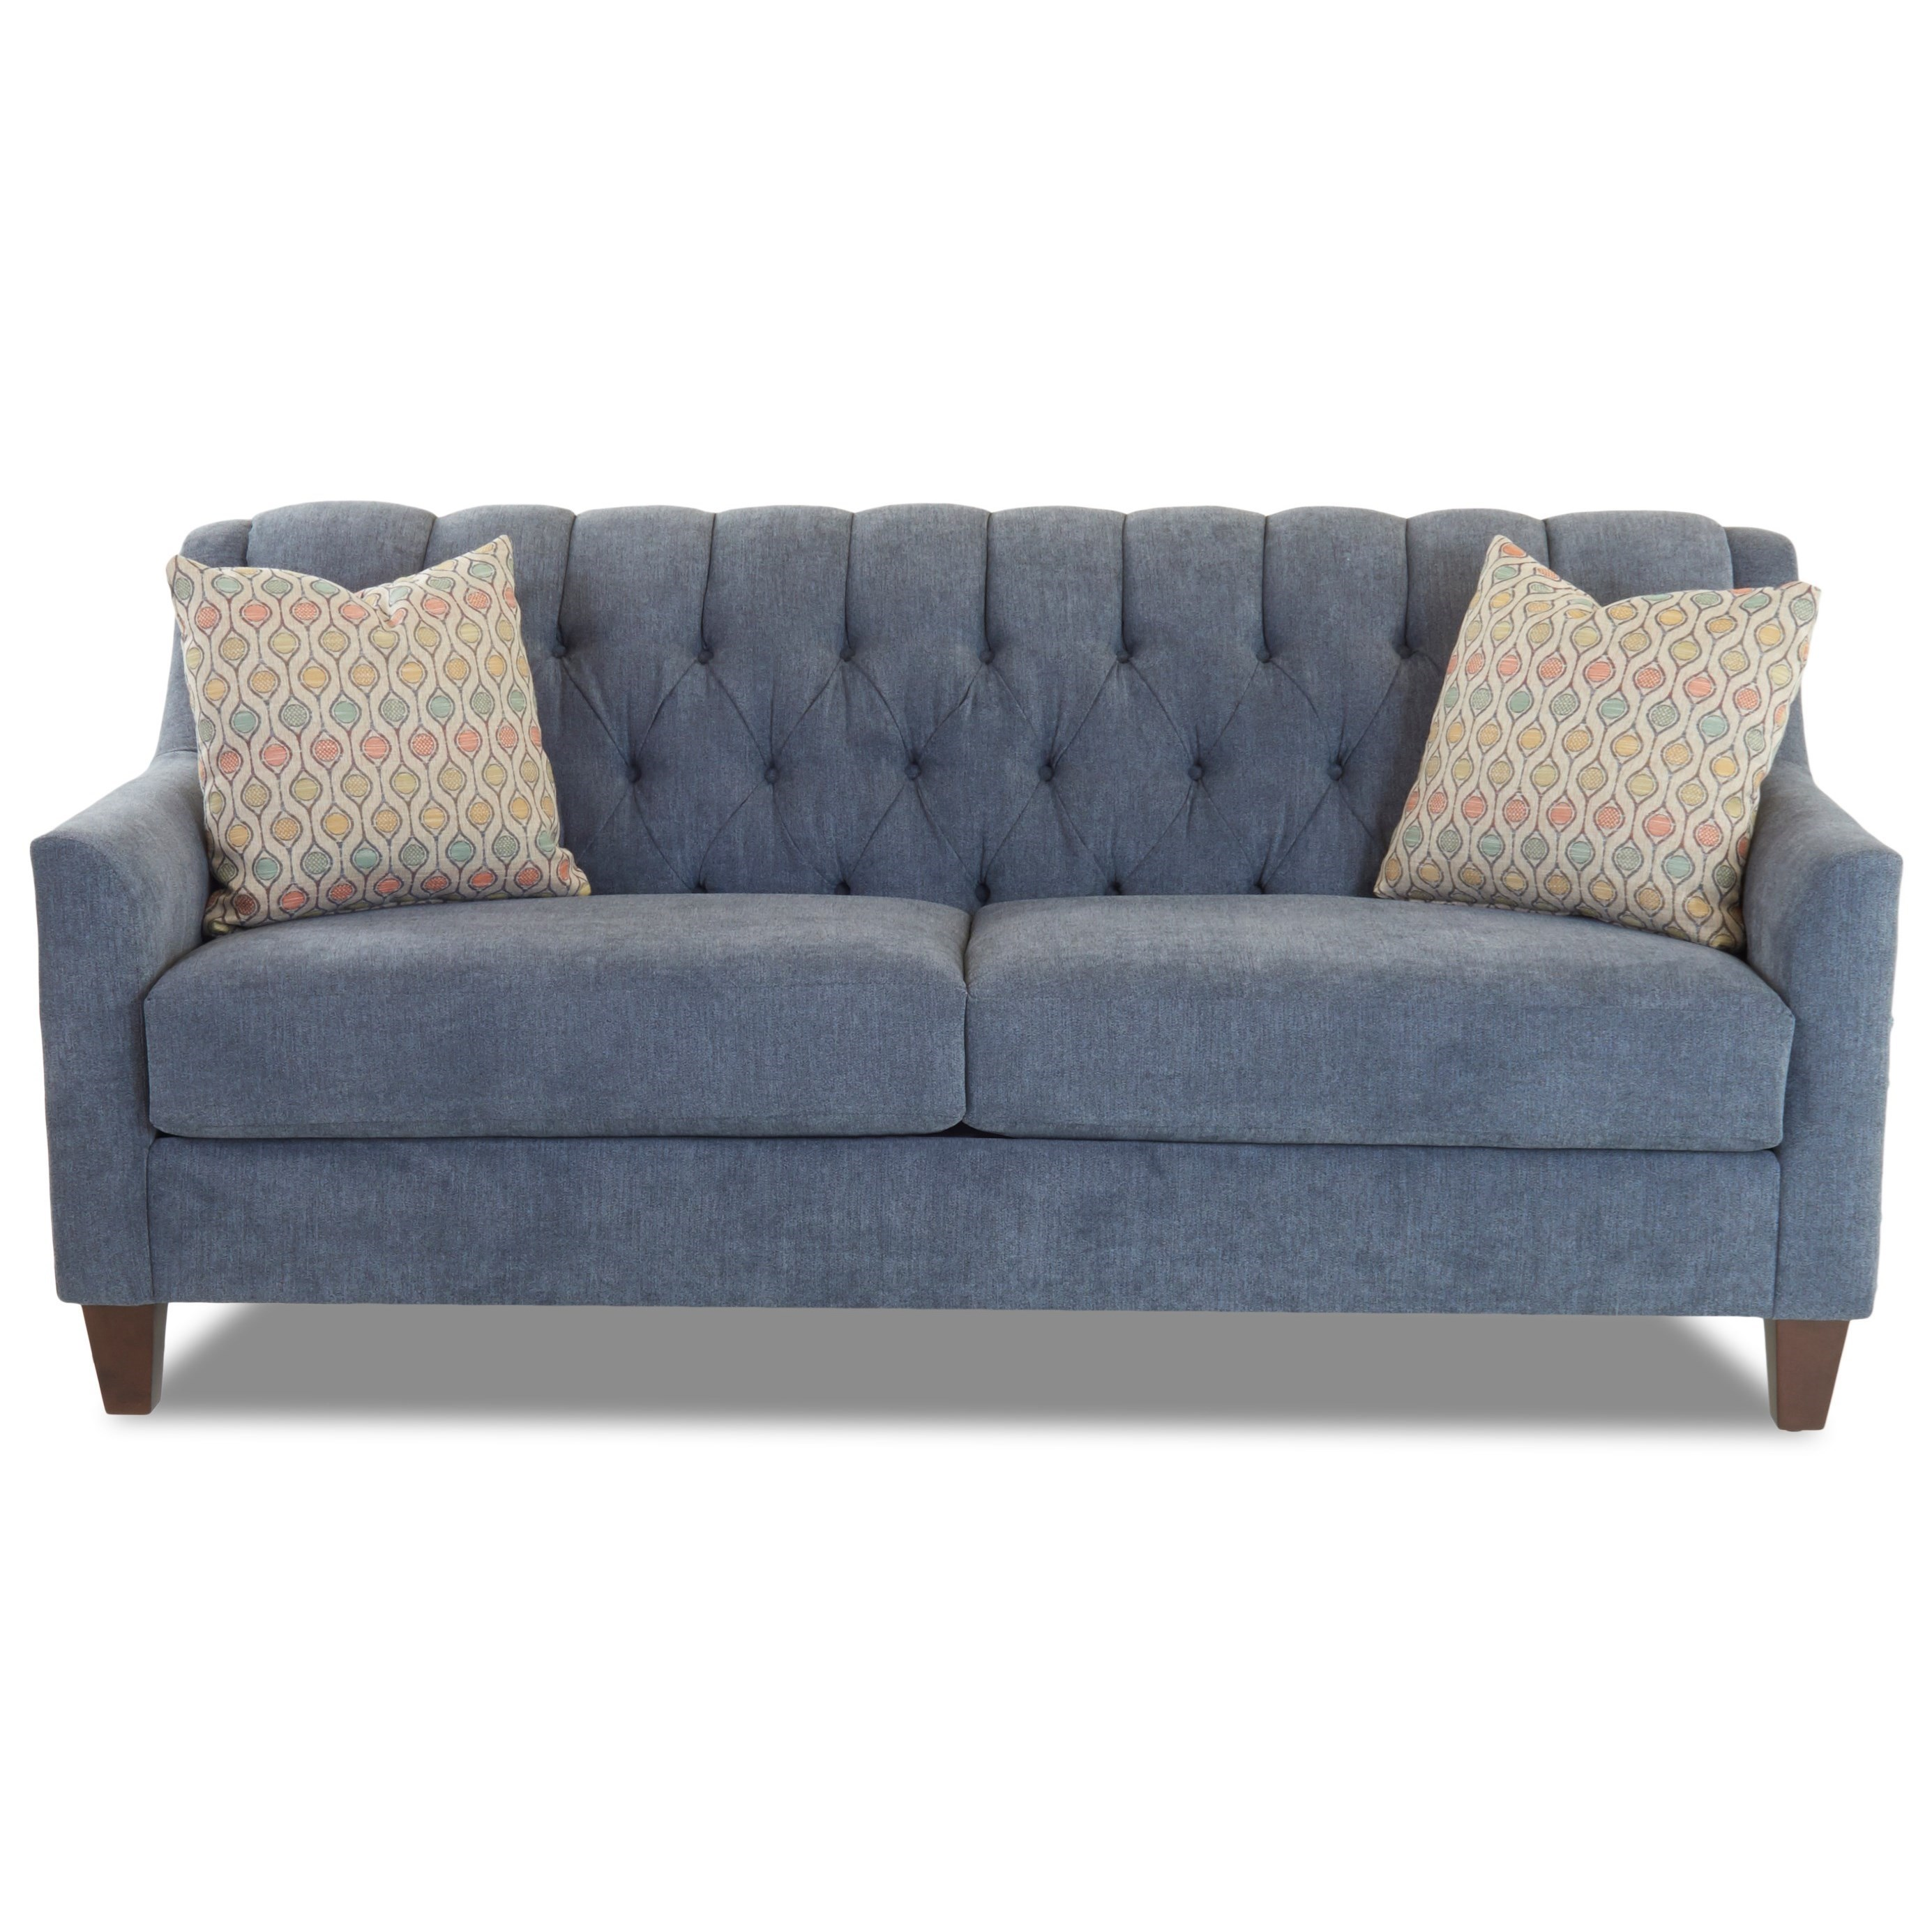 Attractive Miskelly Furniture